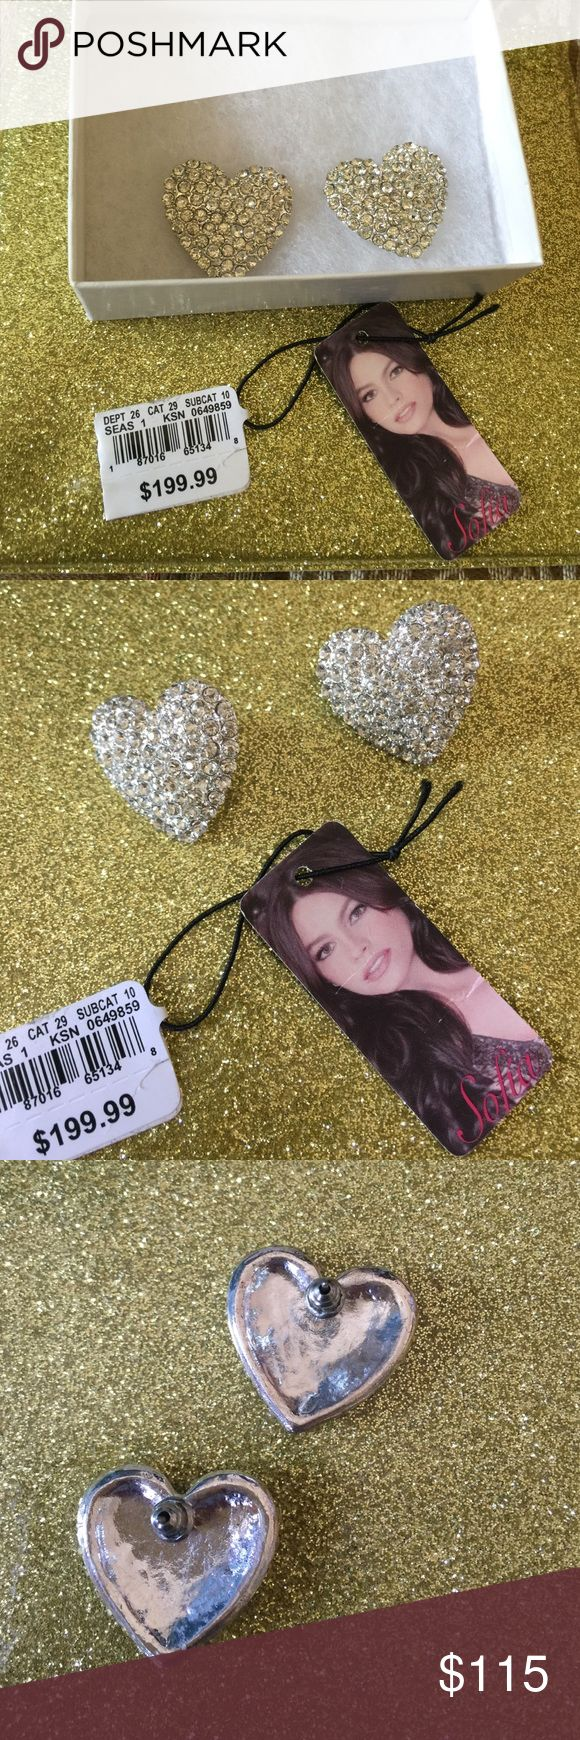 Plated CZ Earrings Never been used high quality white cubic zirconia earrings by Sofia Vergara no trade no LOWBALLS no modeling. Sofia vergada Jewelry Earrings